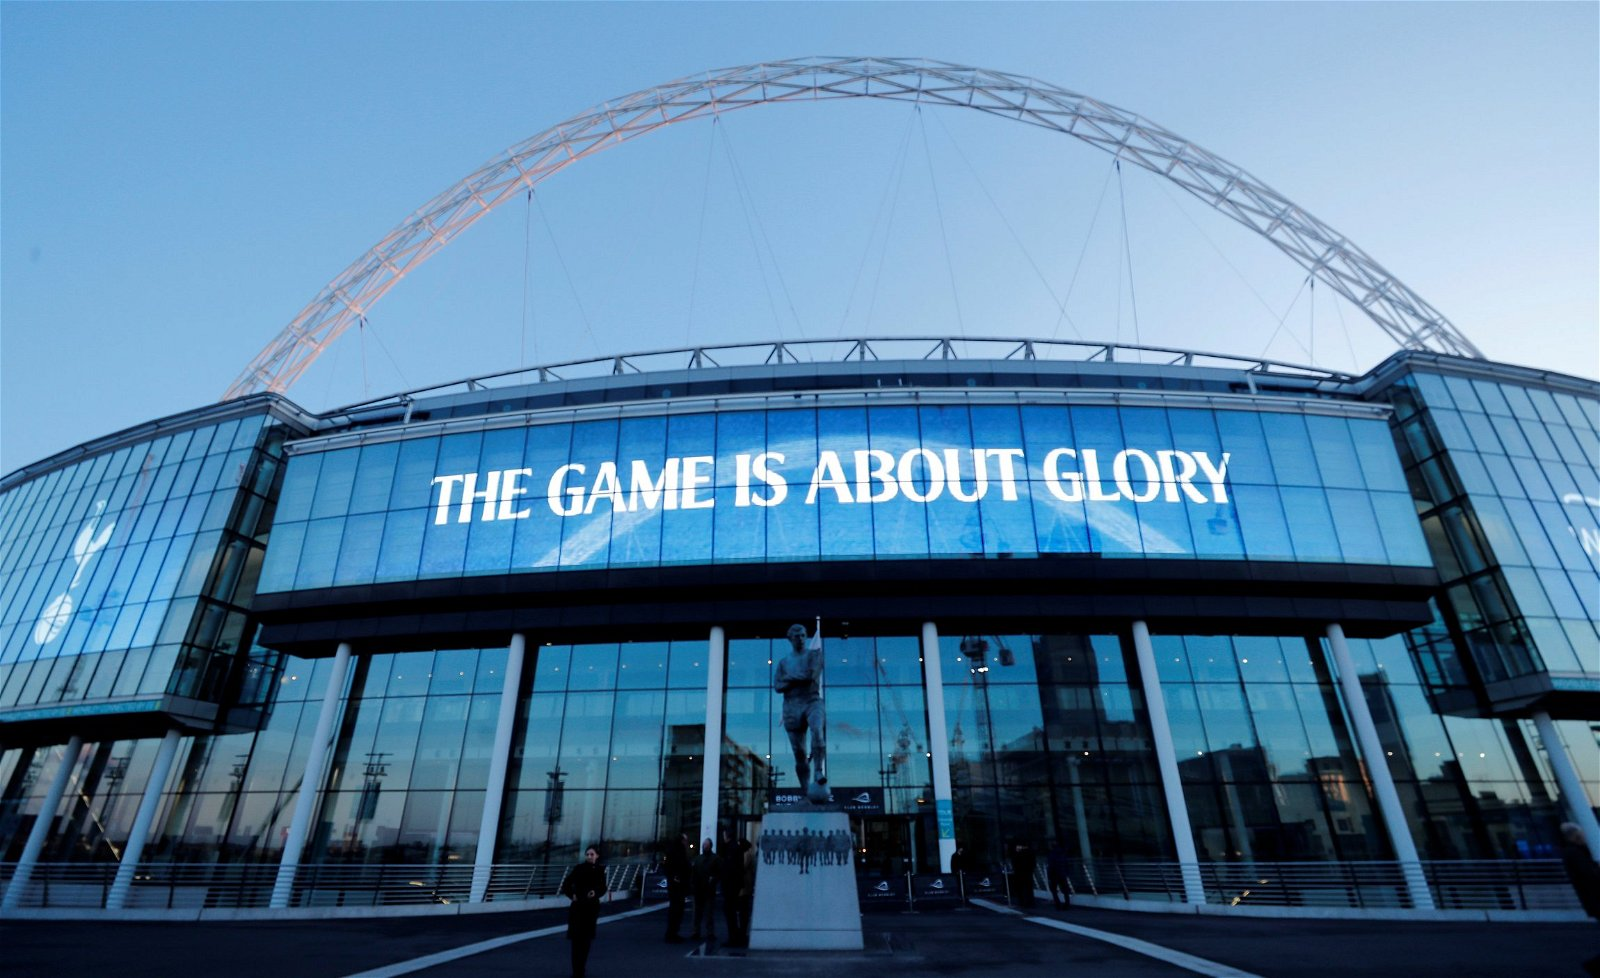 Wembley cladded with Tottenham slogan